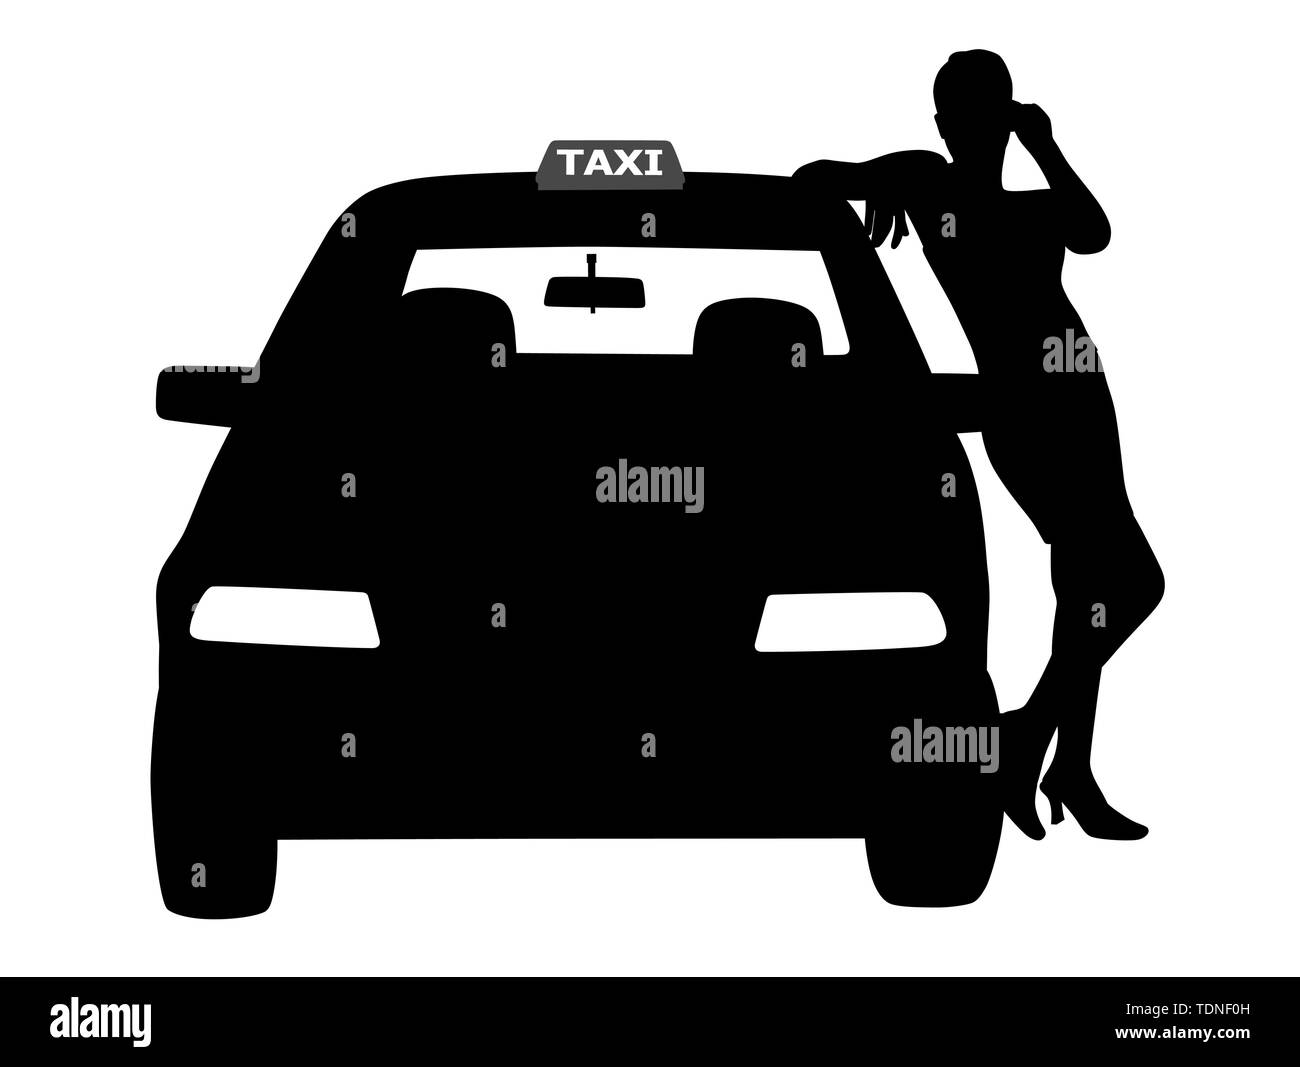 Illustration silhouette of a woman taxi driver standing next to the taxi service car, waiting for a passenger. Isolated white background. EPS file ava - Stock Image